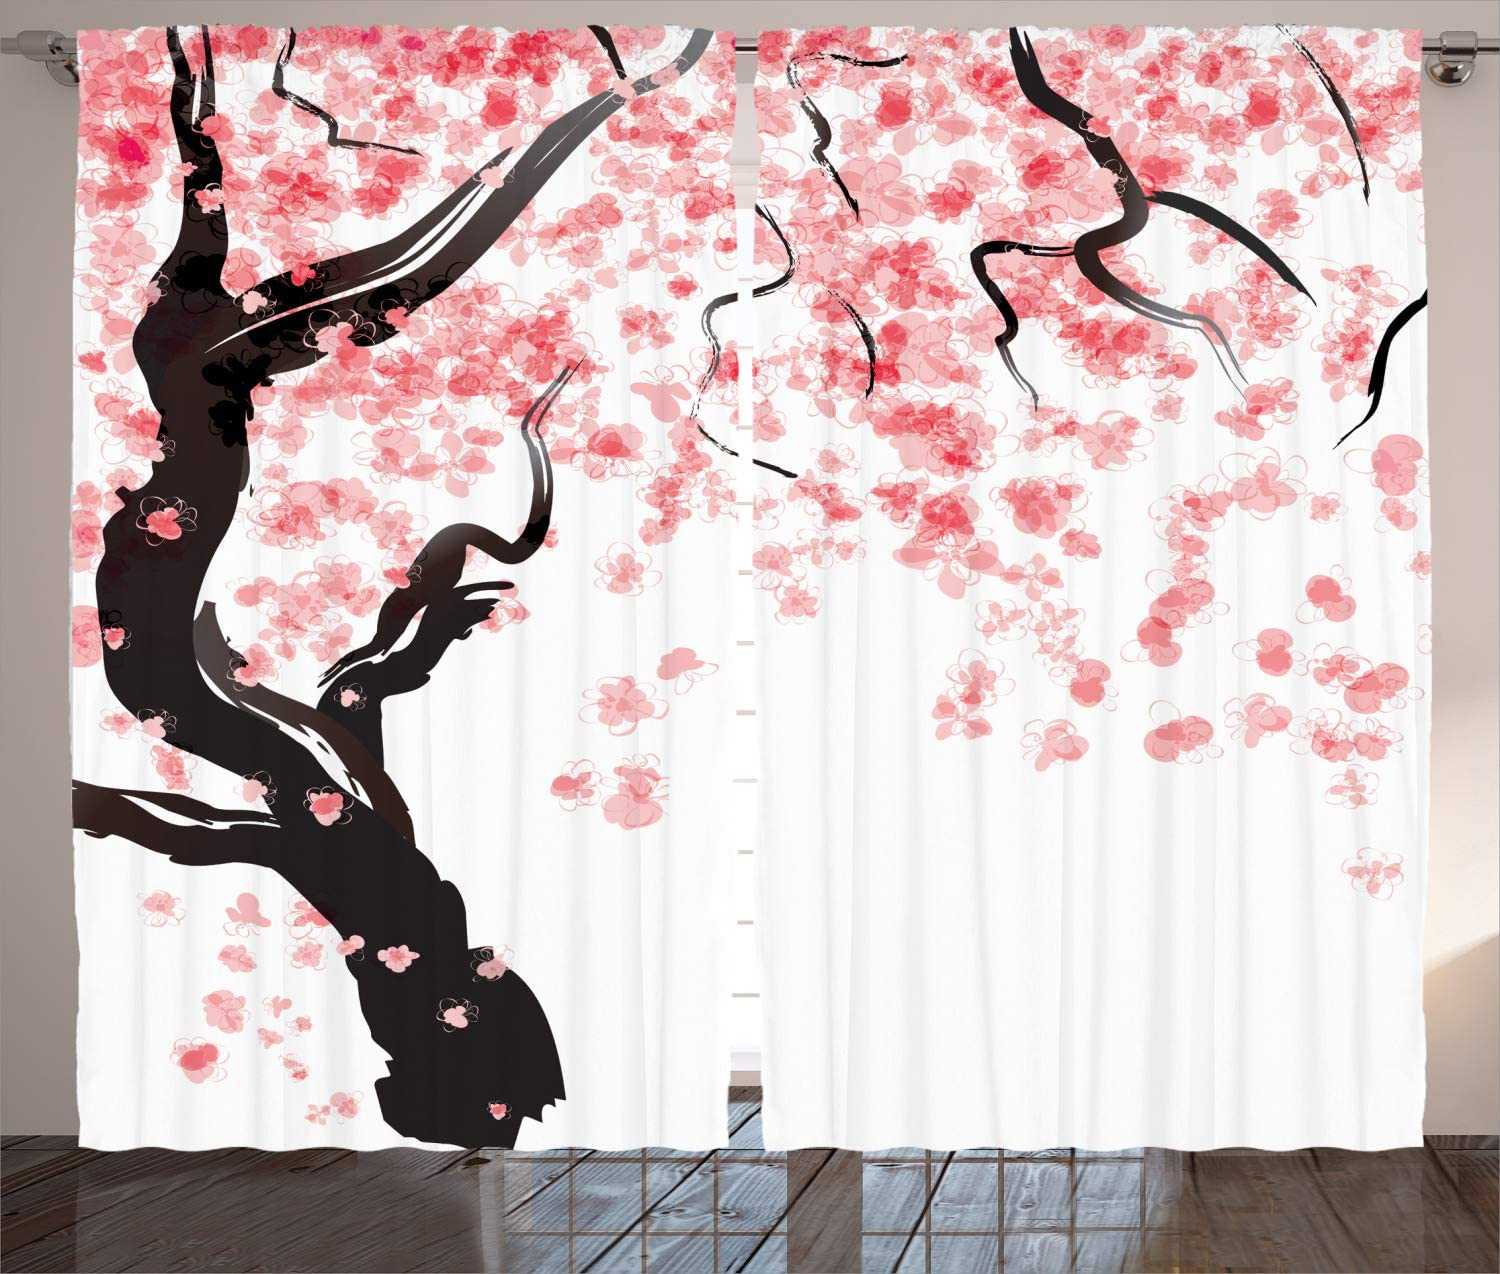 """Ambesonne Floral Curtains, Dogwood Tree Blossom in Watercolor Painting Effect Spring Season Theme Pinkish Tones, Living Room Bedroom Window Drapes 2 Panel Set, 108"""" X 90"""", Black Pink"""